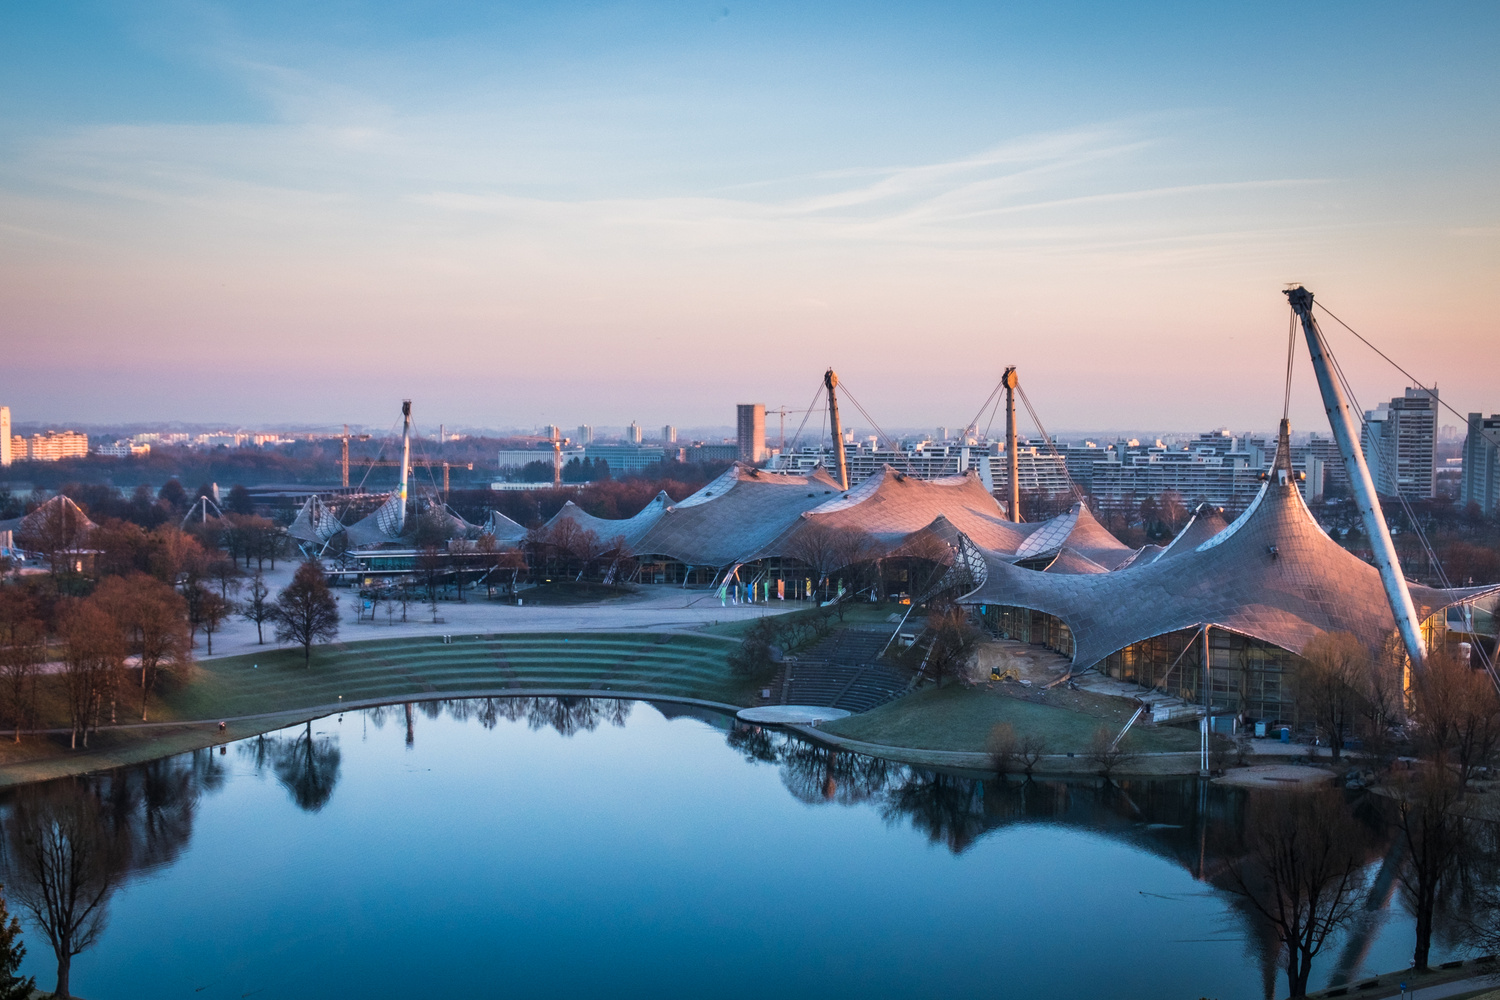 Sunrise at Olympiapark by Fine Ch